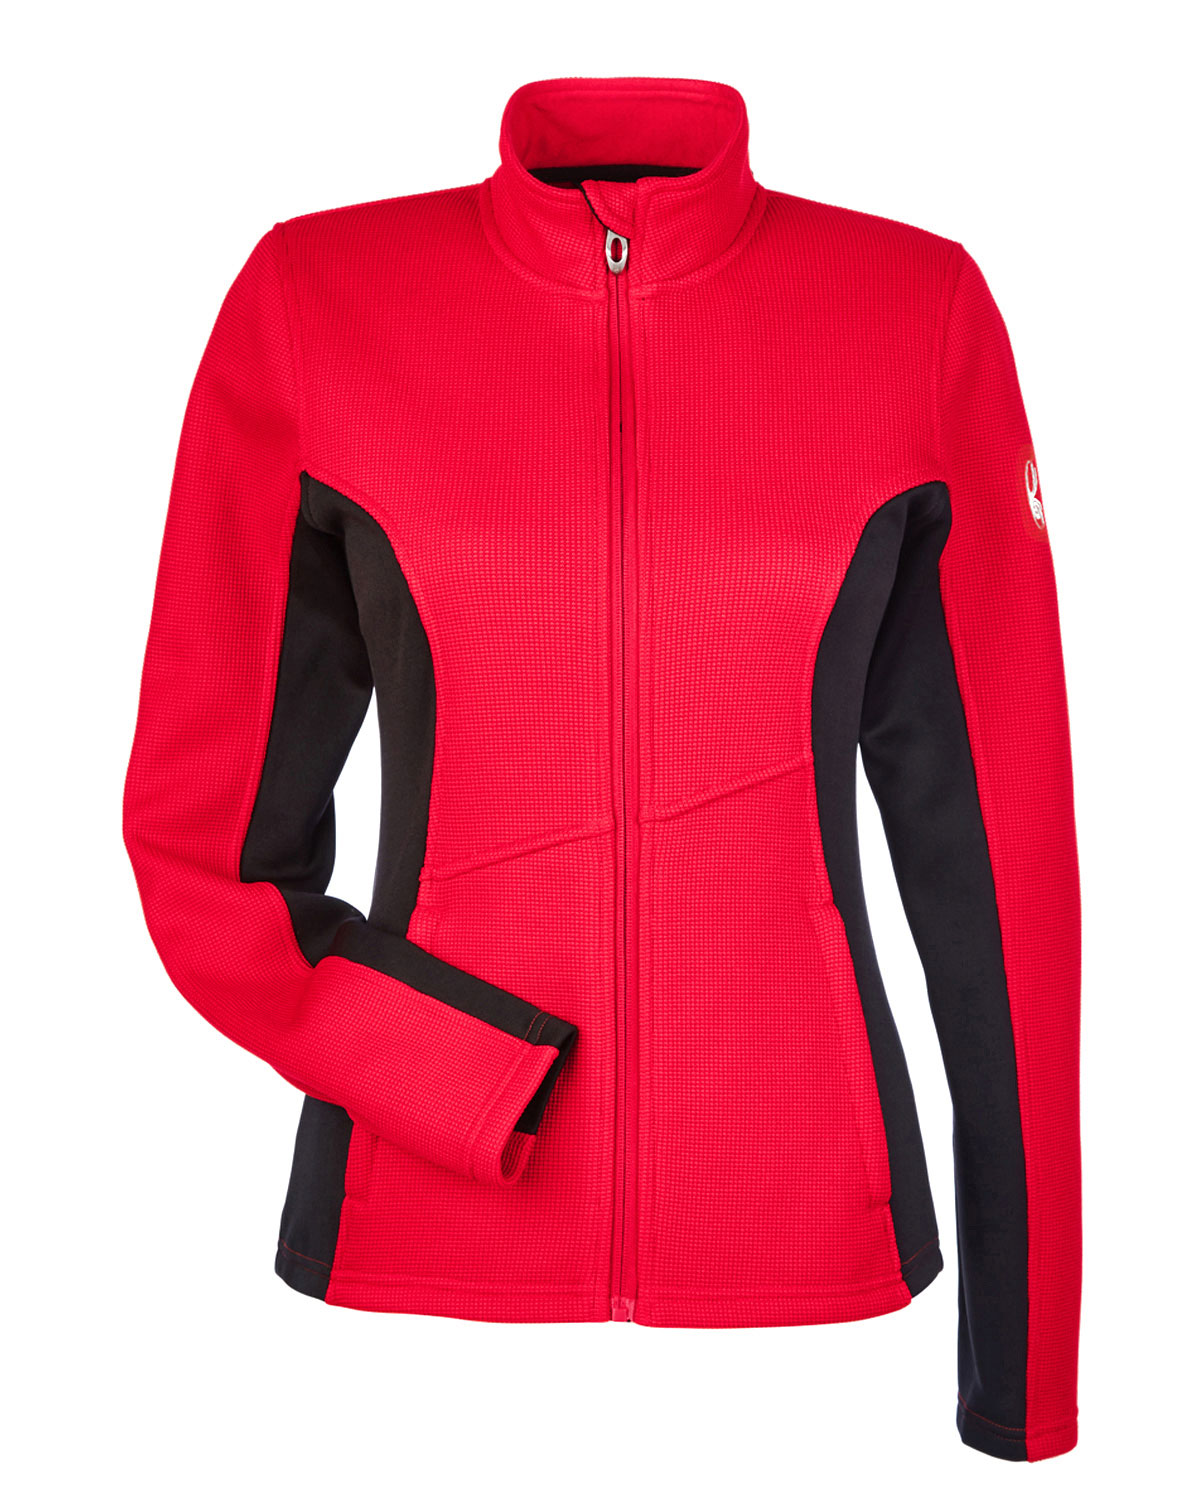 Spyder Ladies Constant Full Zip Sweater Fleece